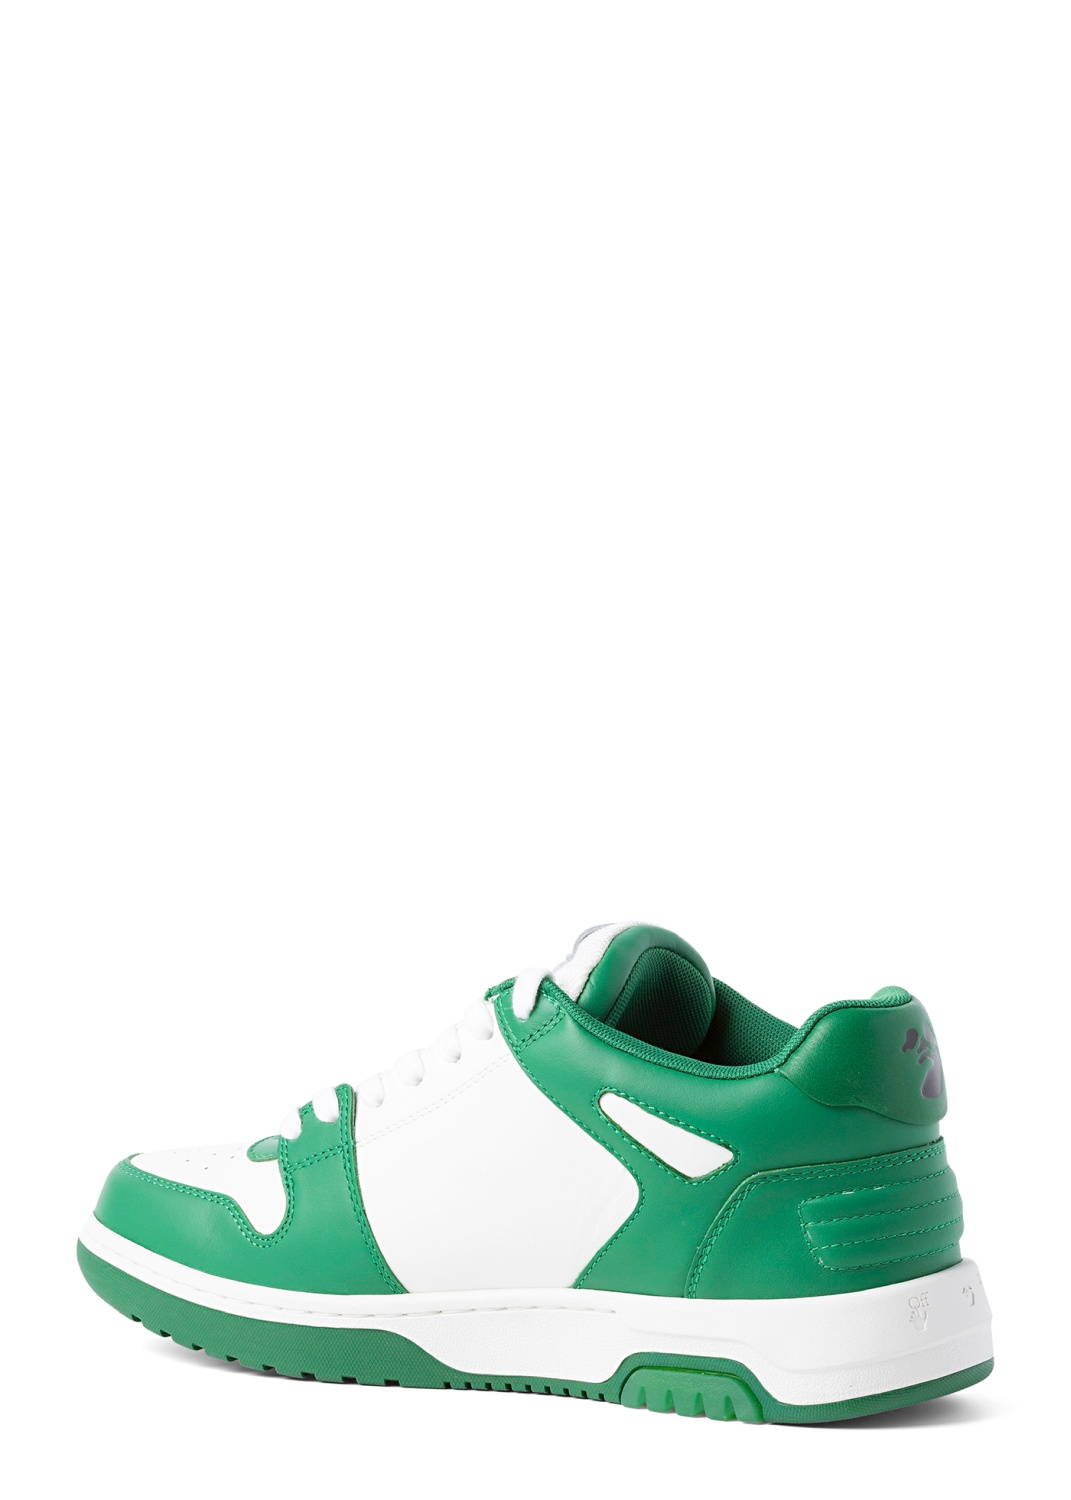 OUT OF OFFICE CALF LEATHER WHITE GREEN image number 2